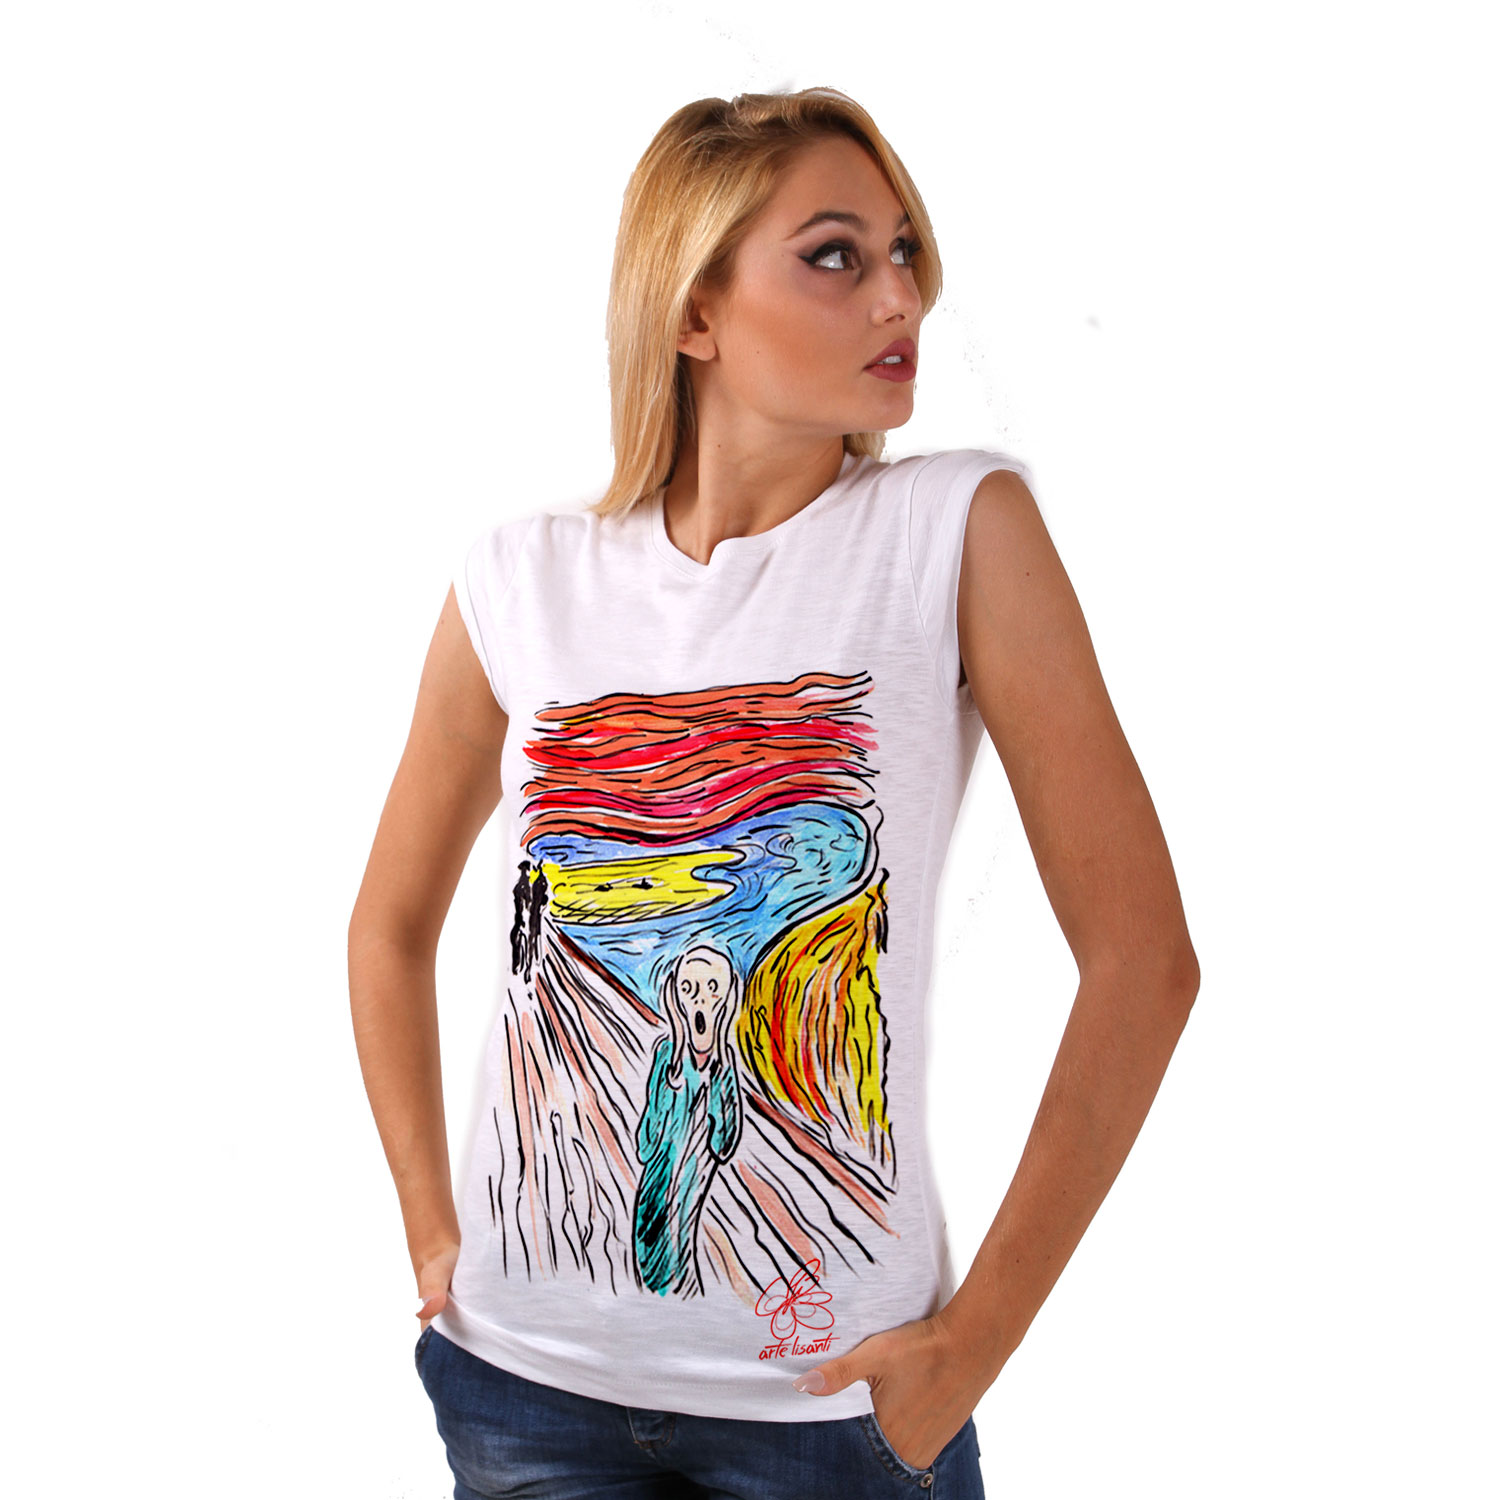 Hand-painted T-shirt - The scream by Munch cartoon color